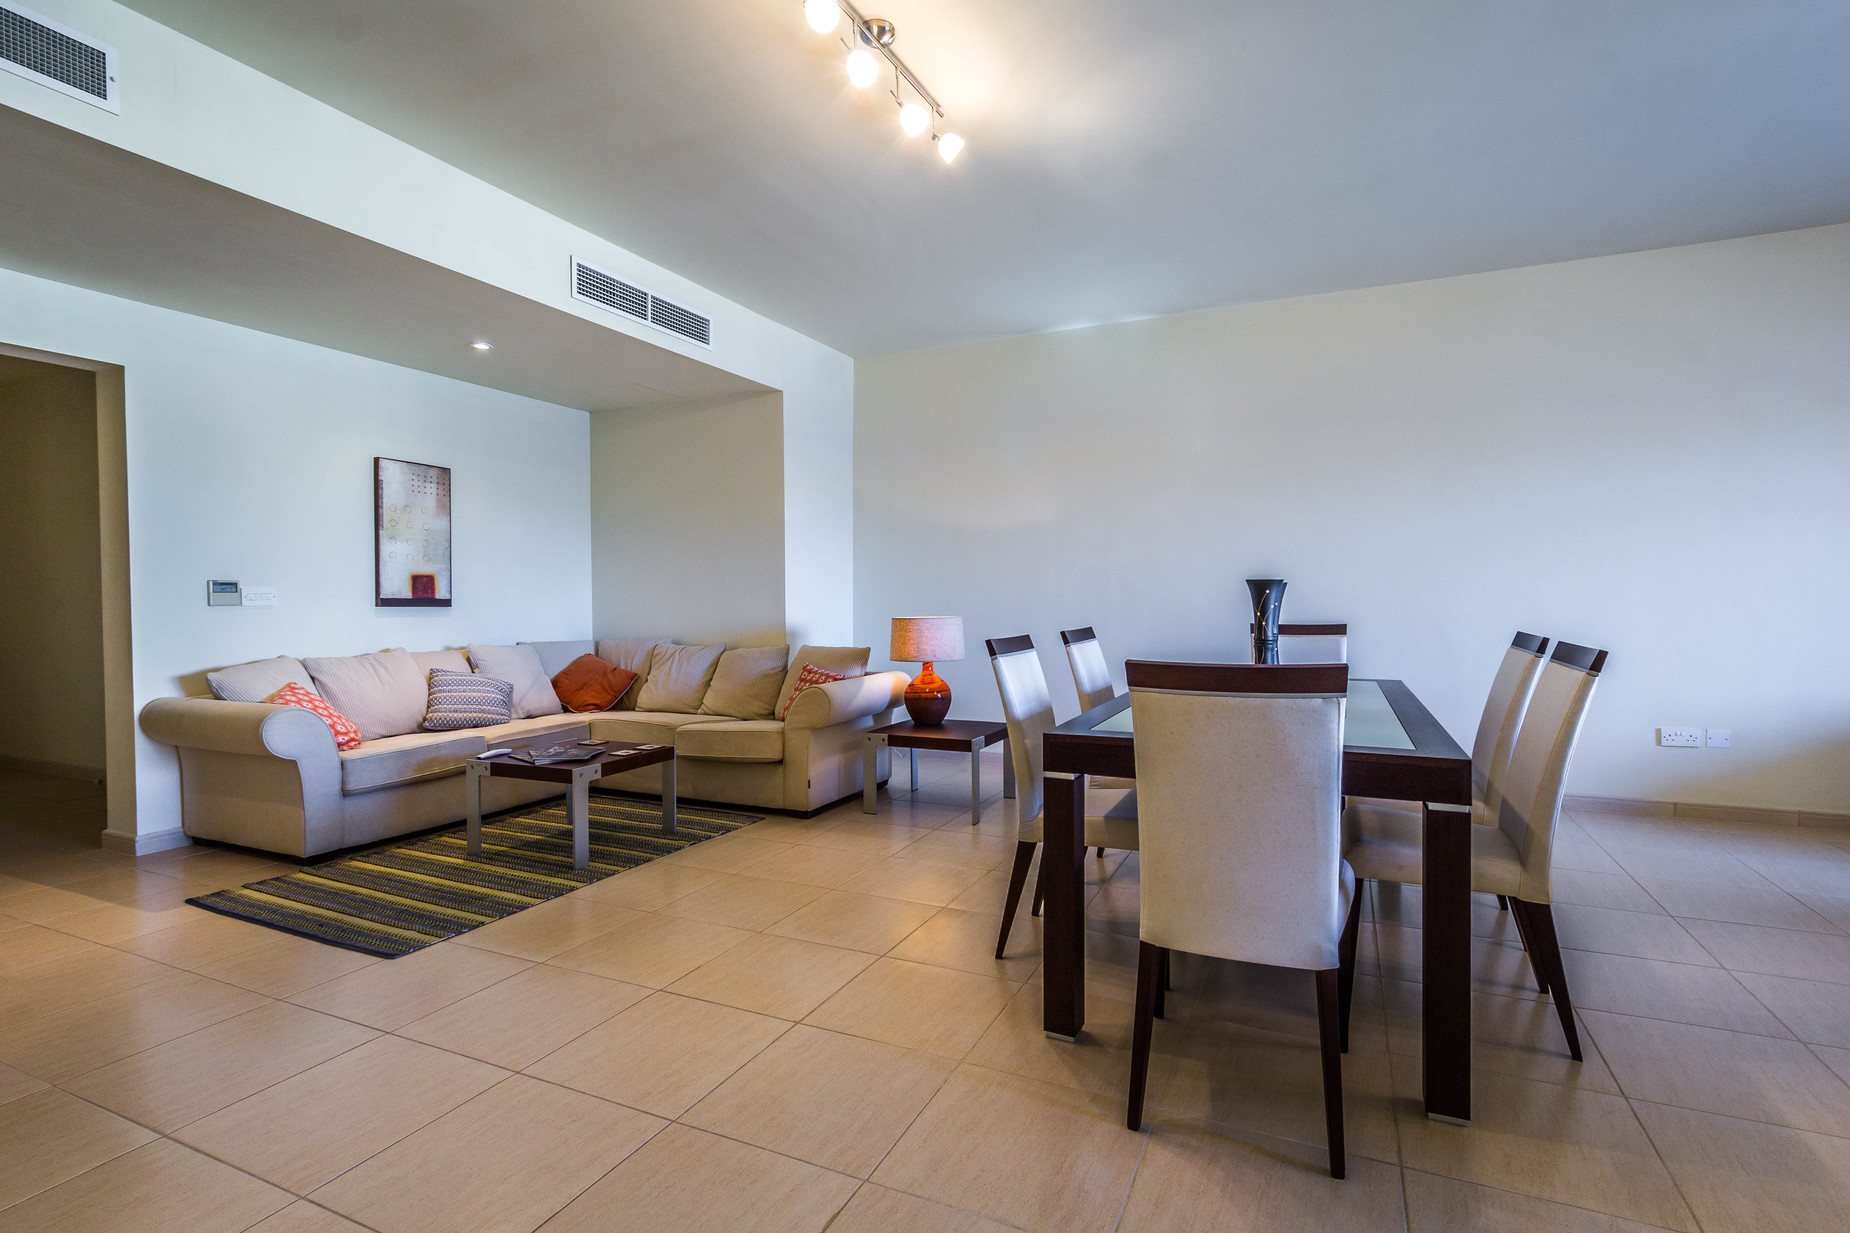 4 bed Apartment For Sale in Mellieha, Mellieha - thumb 6